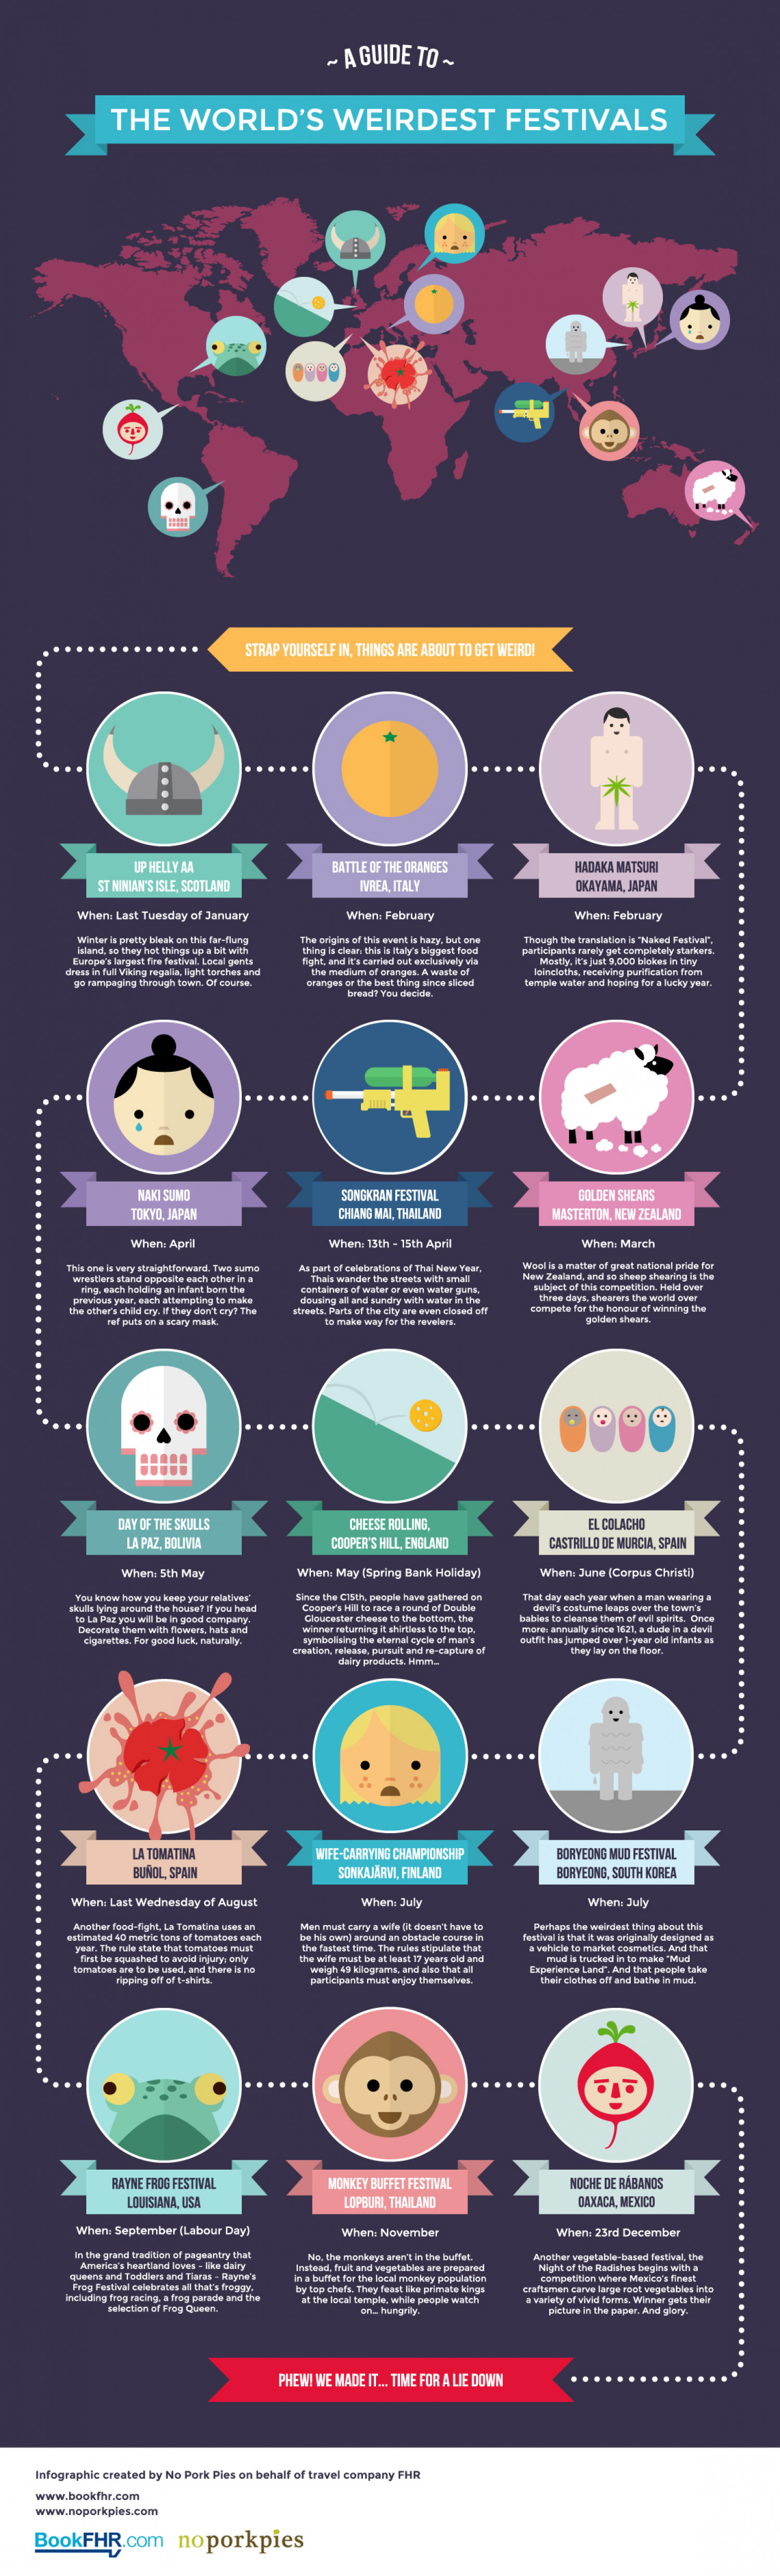 The World's Weirdest Festivals Infographic